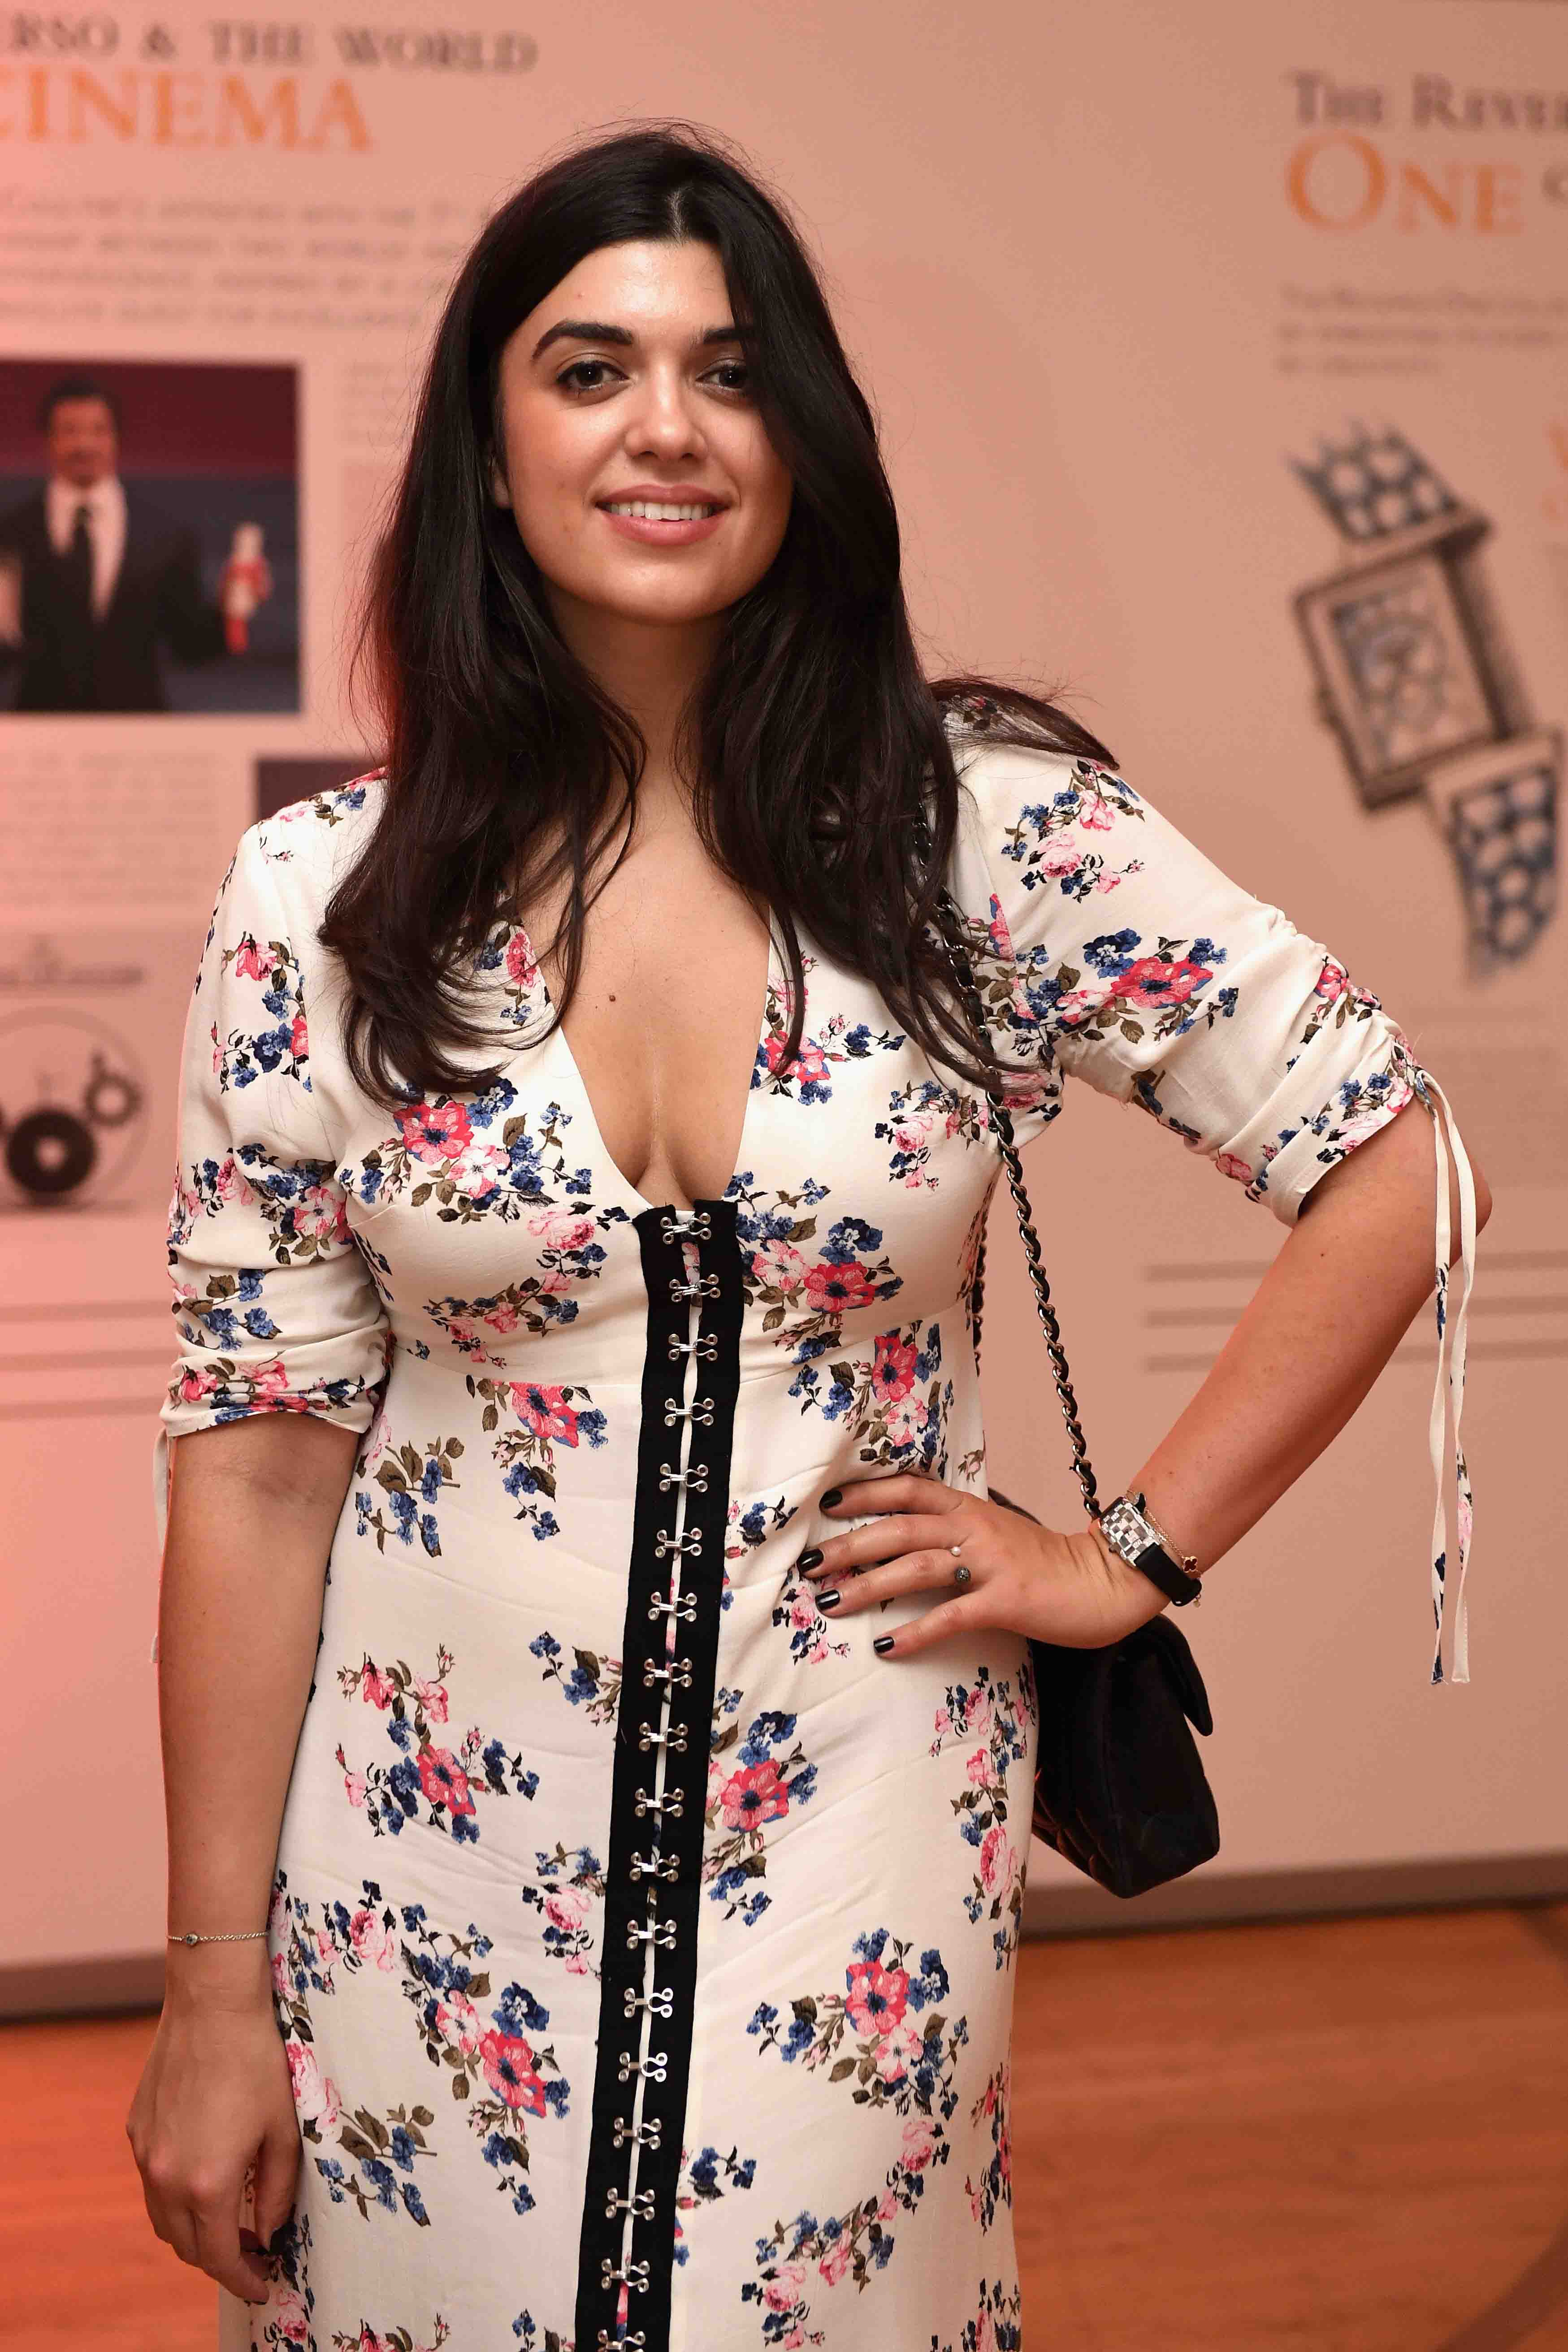 """LONDON, ENGLAND - MAY 31: Lydia Pili attends Jaeger-LeCoultre & Christie's """"Roaring 20's, Reverso 30's"""" Party at Christie's South Kensington on May 31, 2017 in London, England. (Photo by Chris J Ratcliffe/Getty Images for Jaeger-LeCoultre) *** Local Caption *** Lydia Pili"""